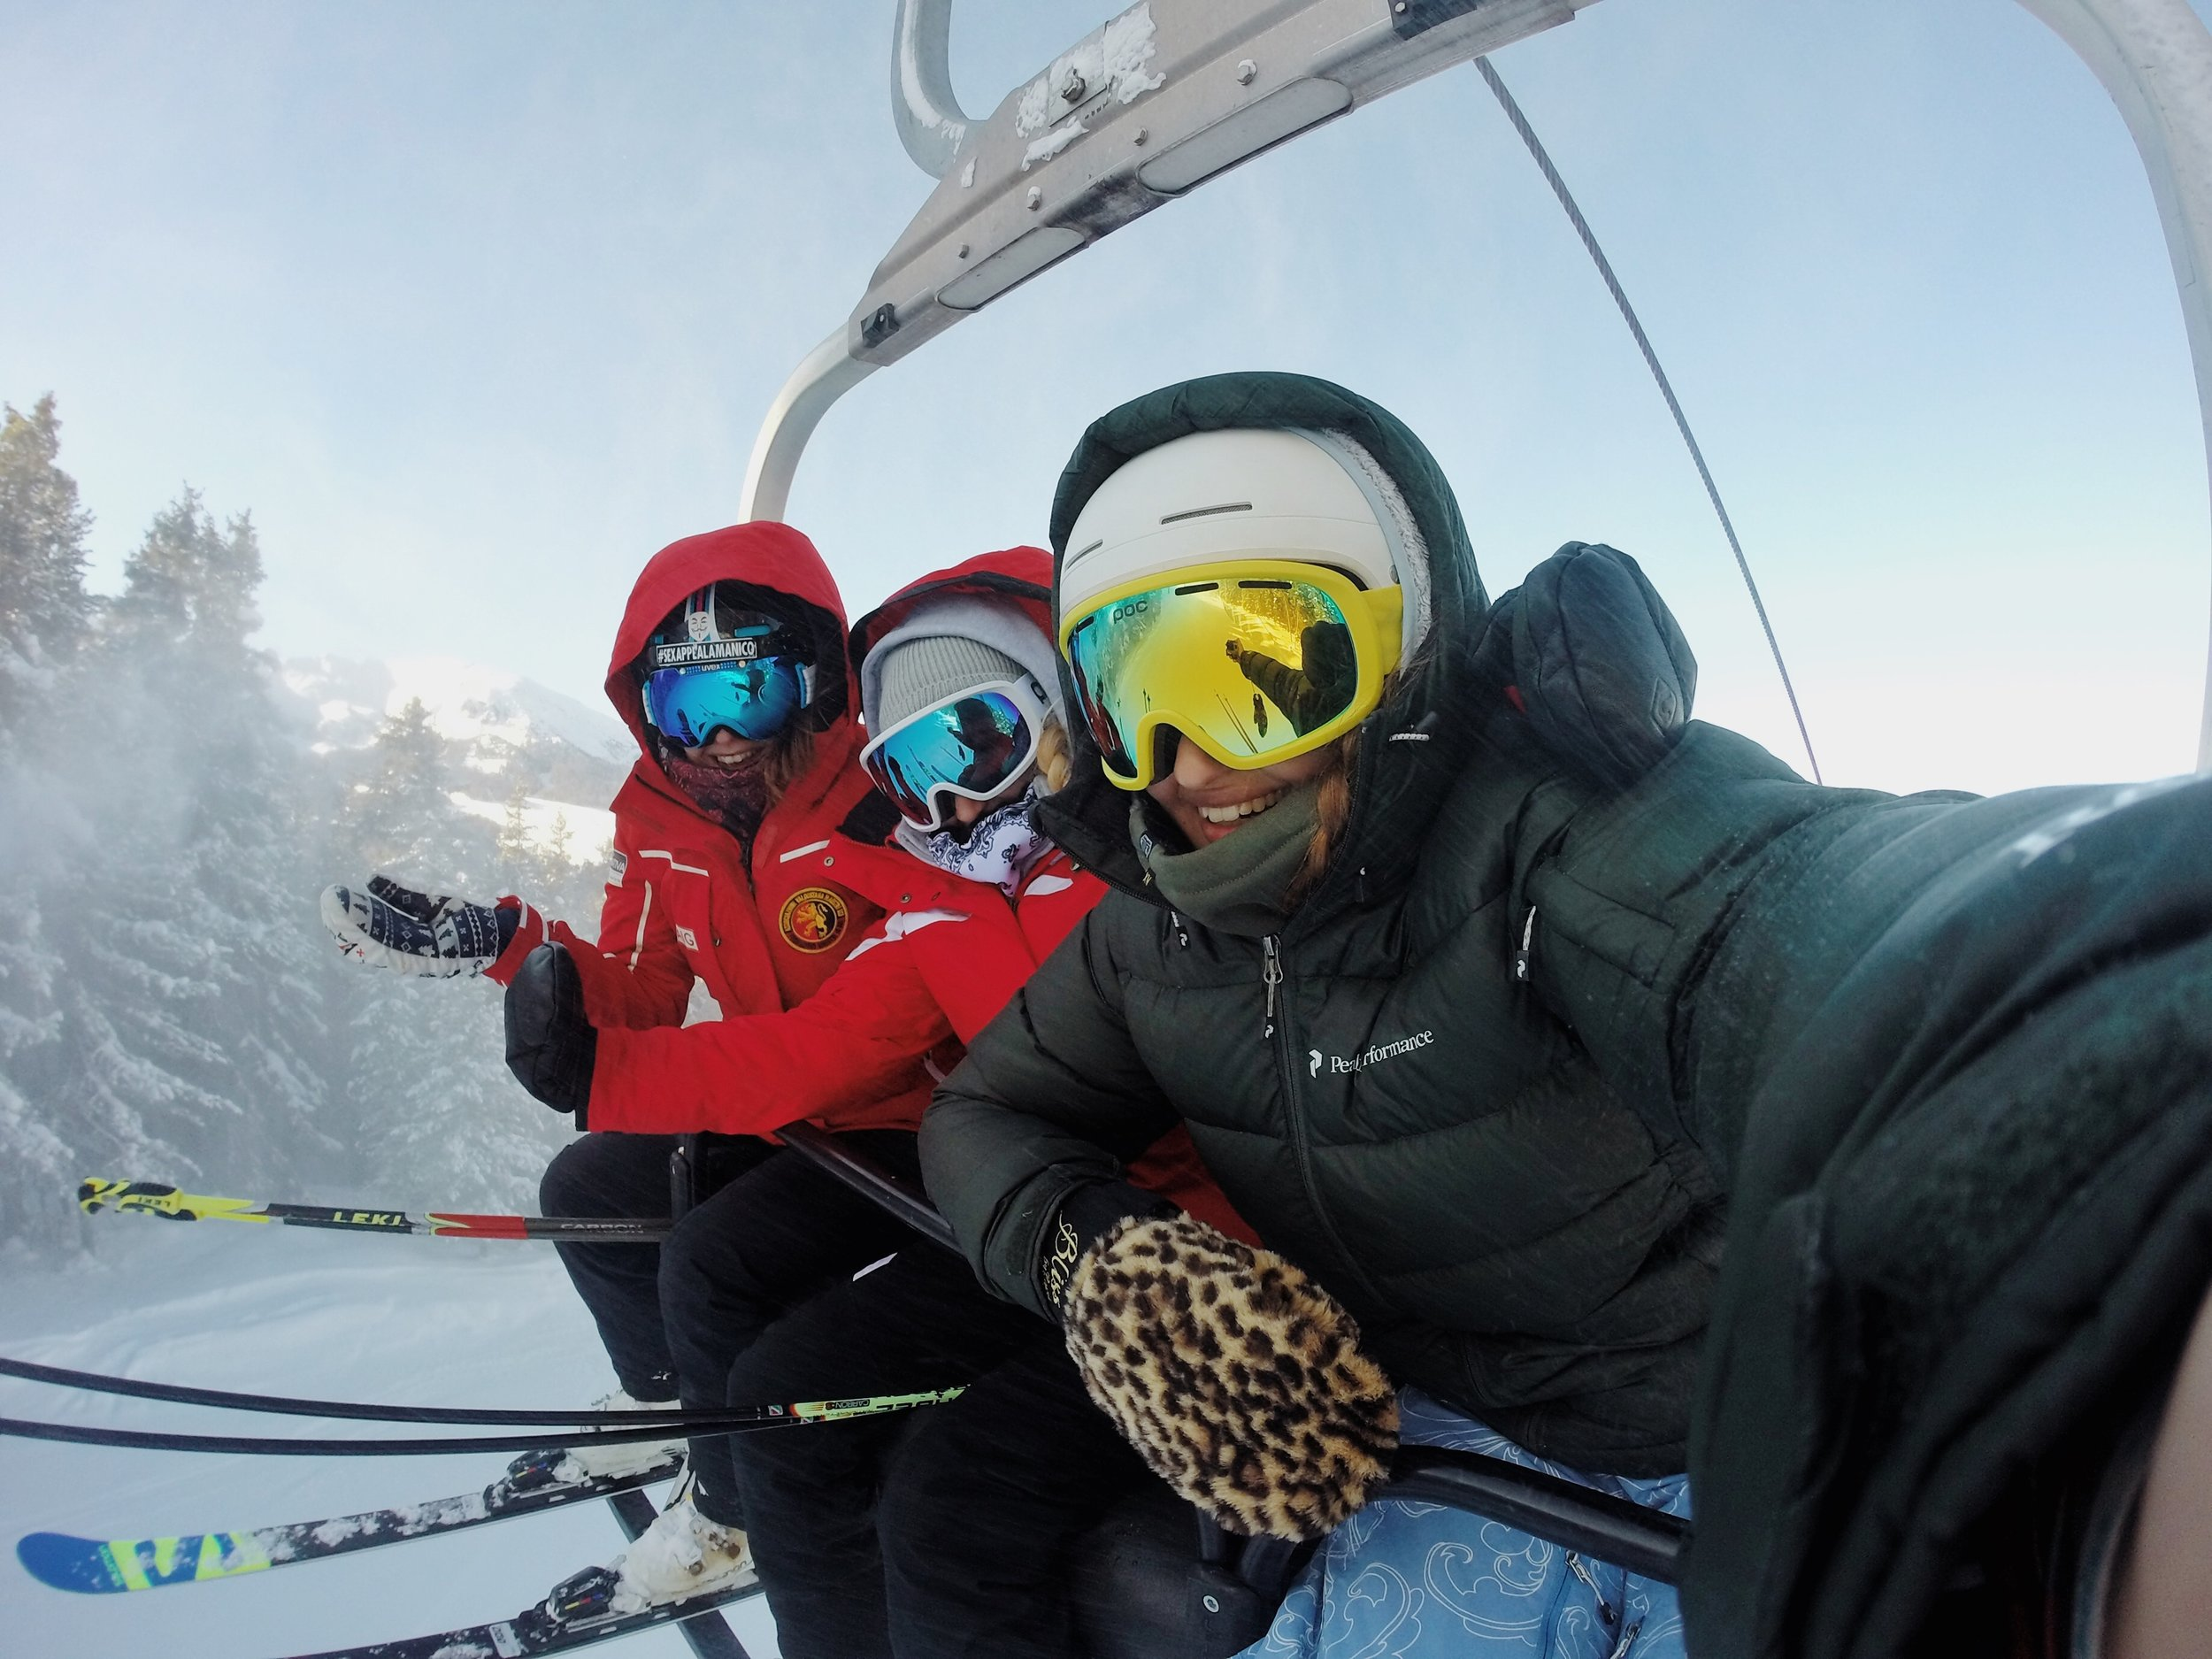 Building real friendships on the lift rides up